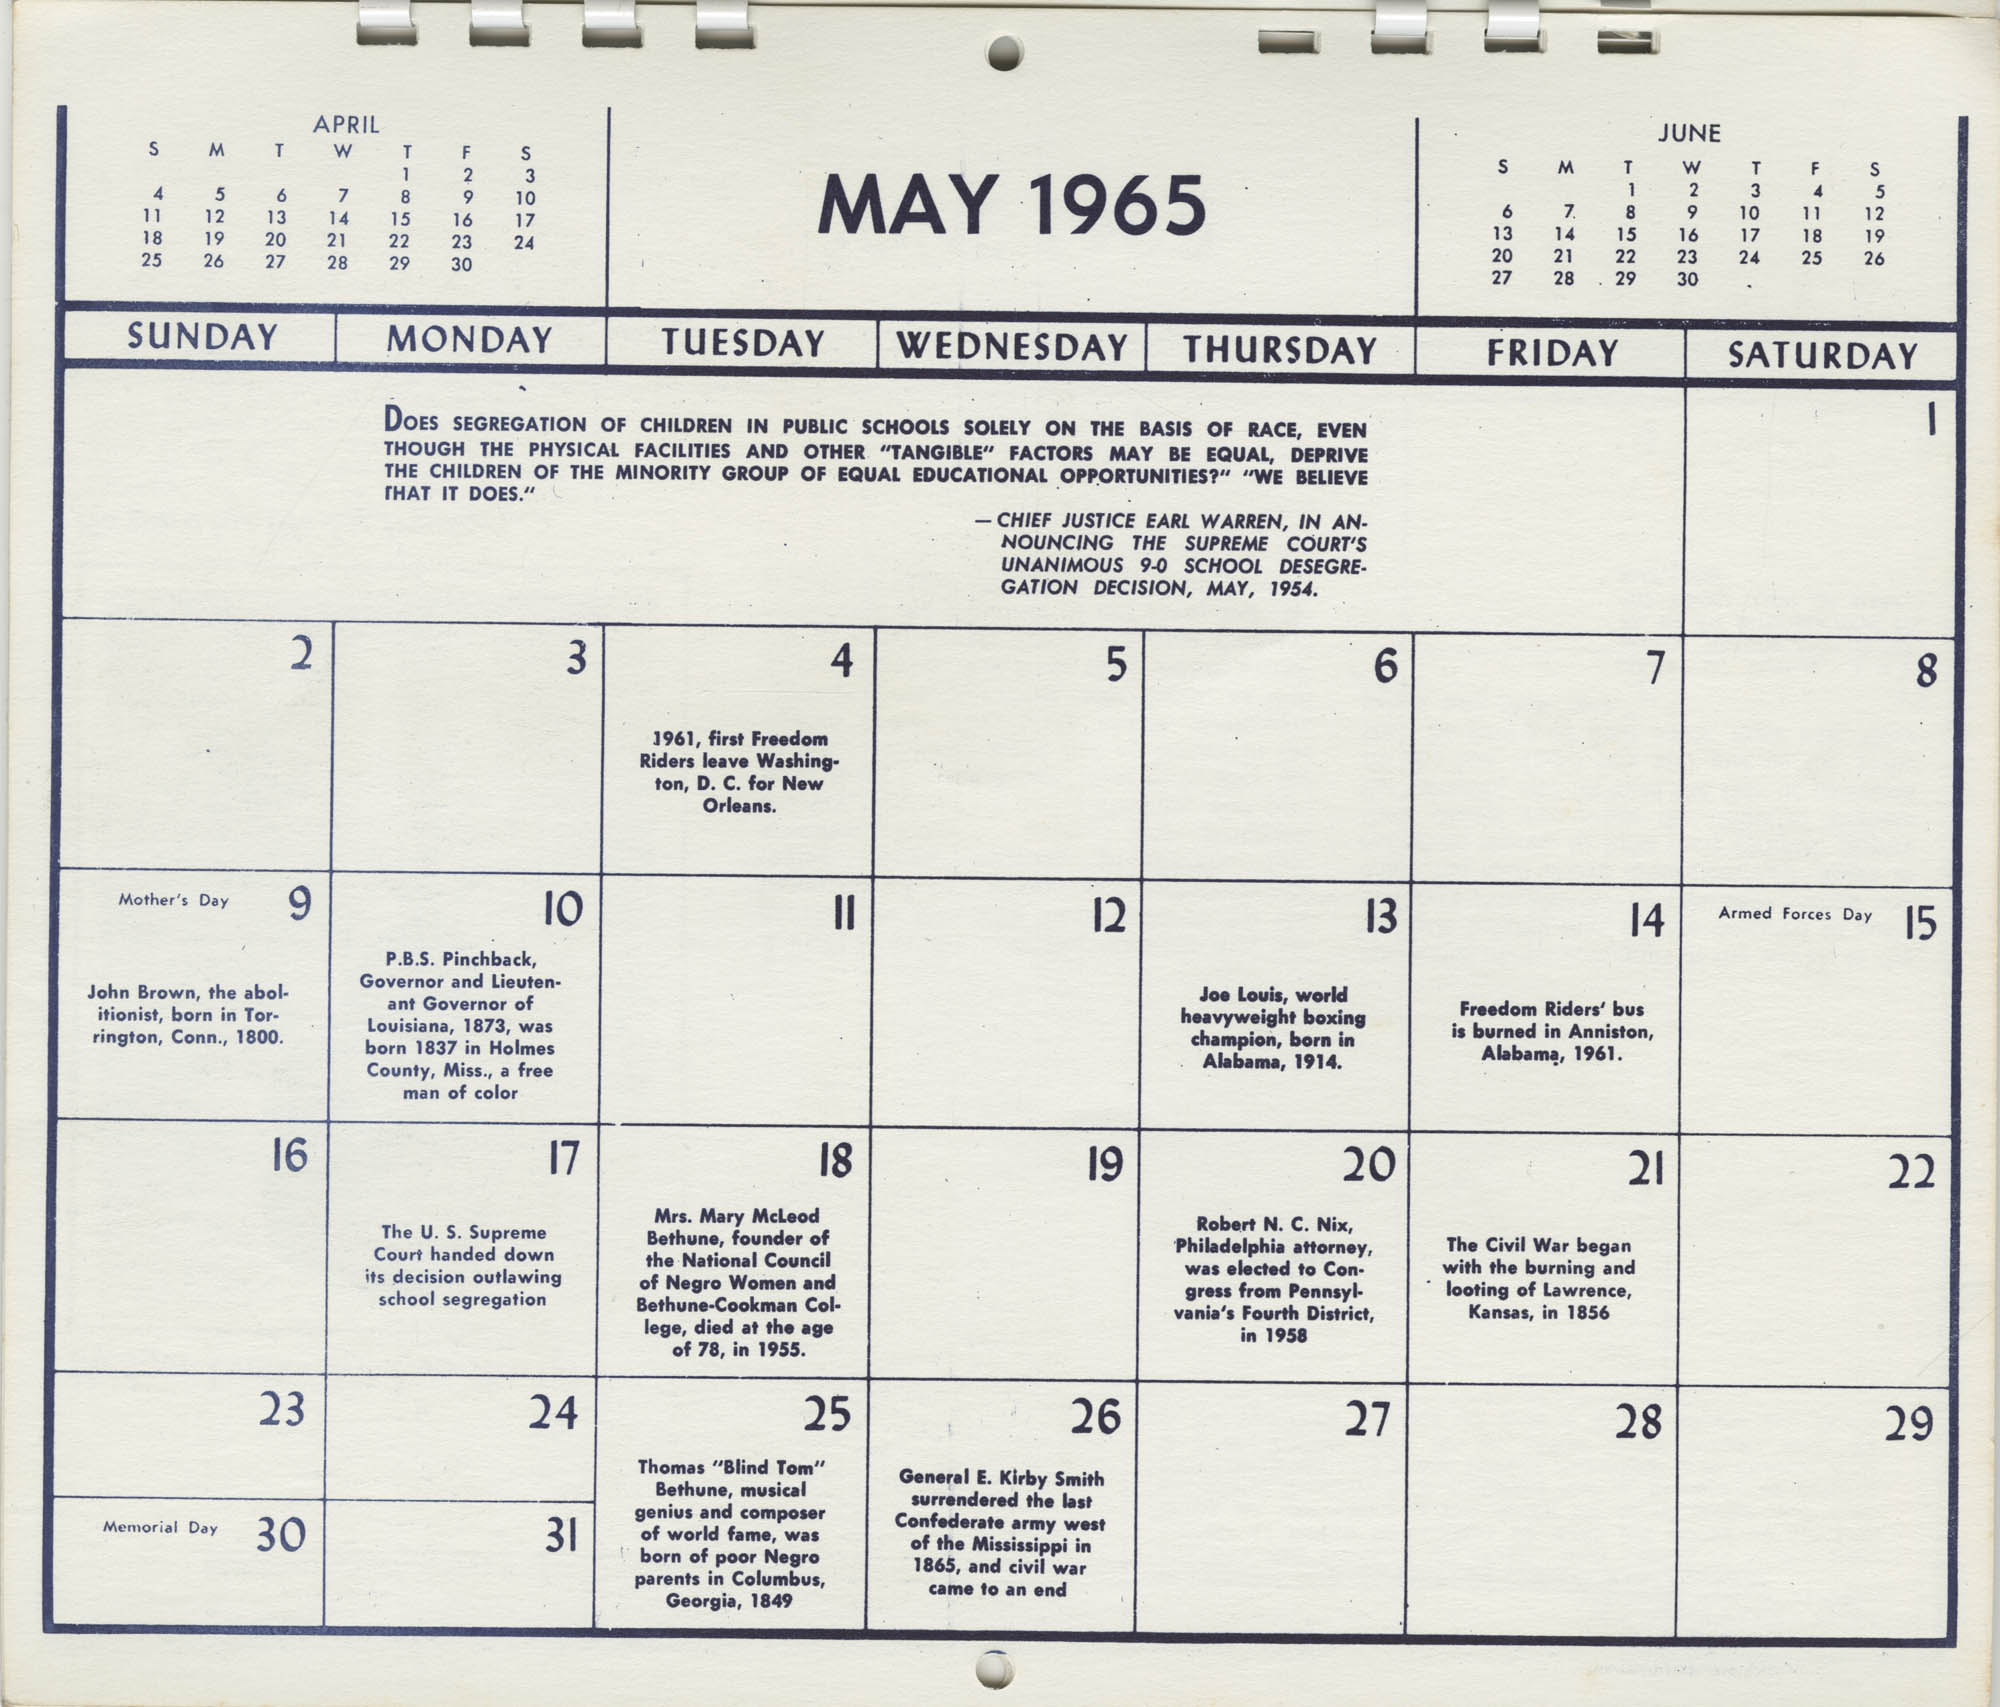 Southern Christian Leadership Conference Newsletter Calendar, May 1965, Bottom